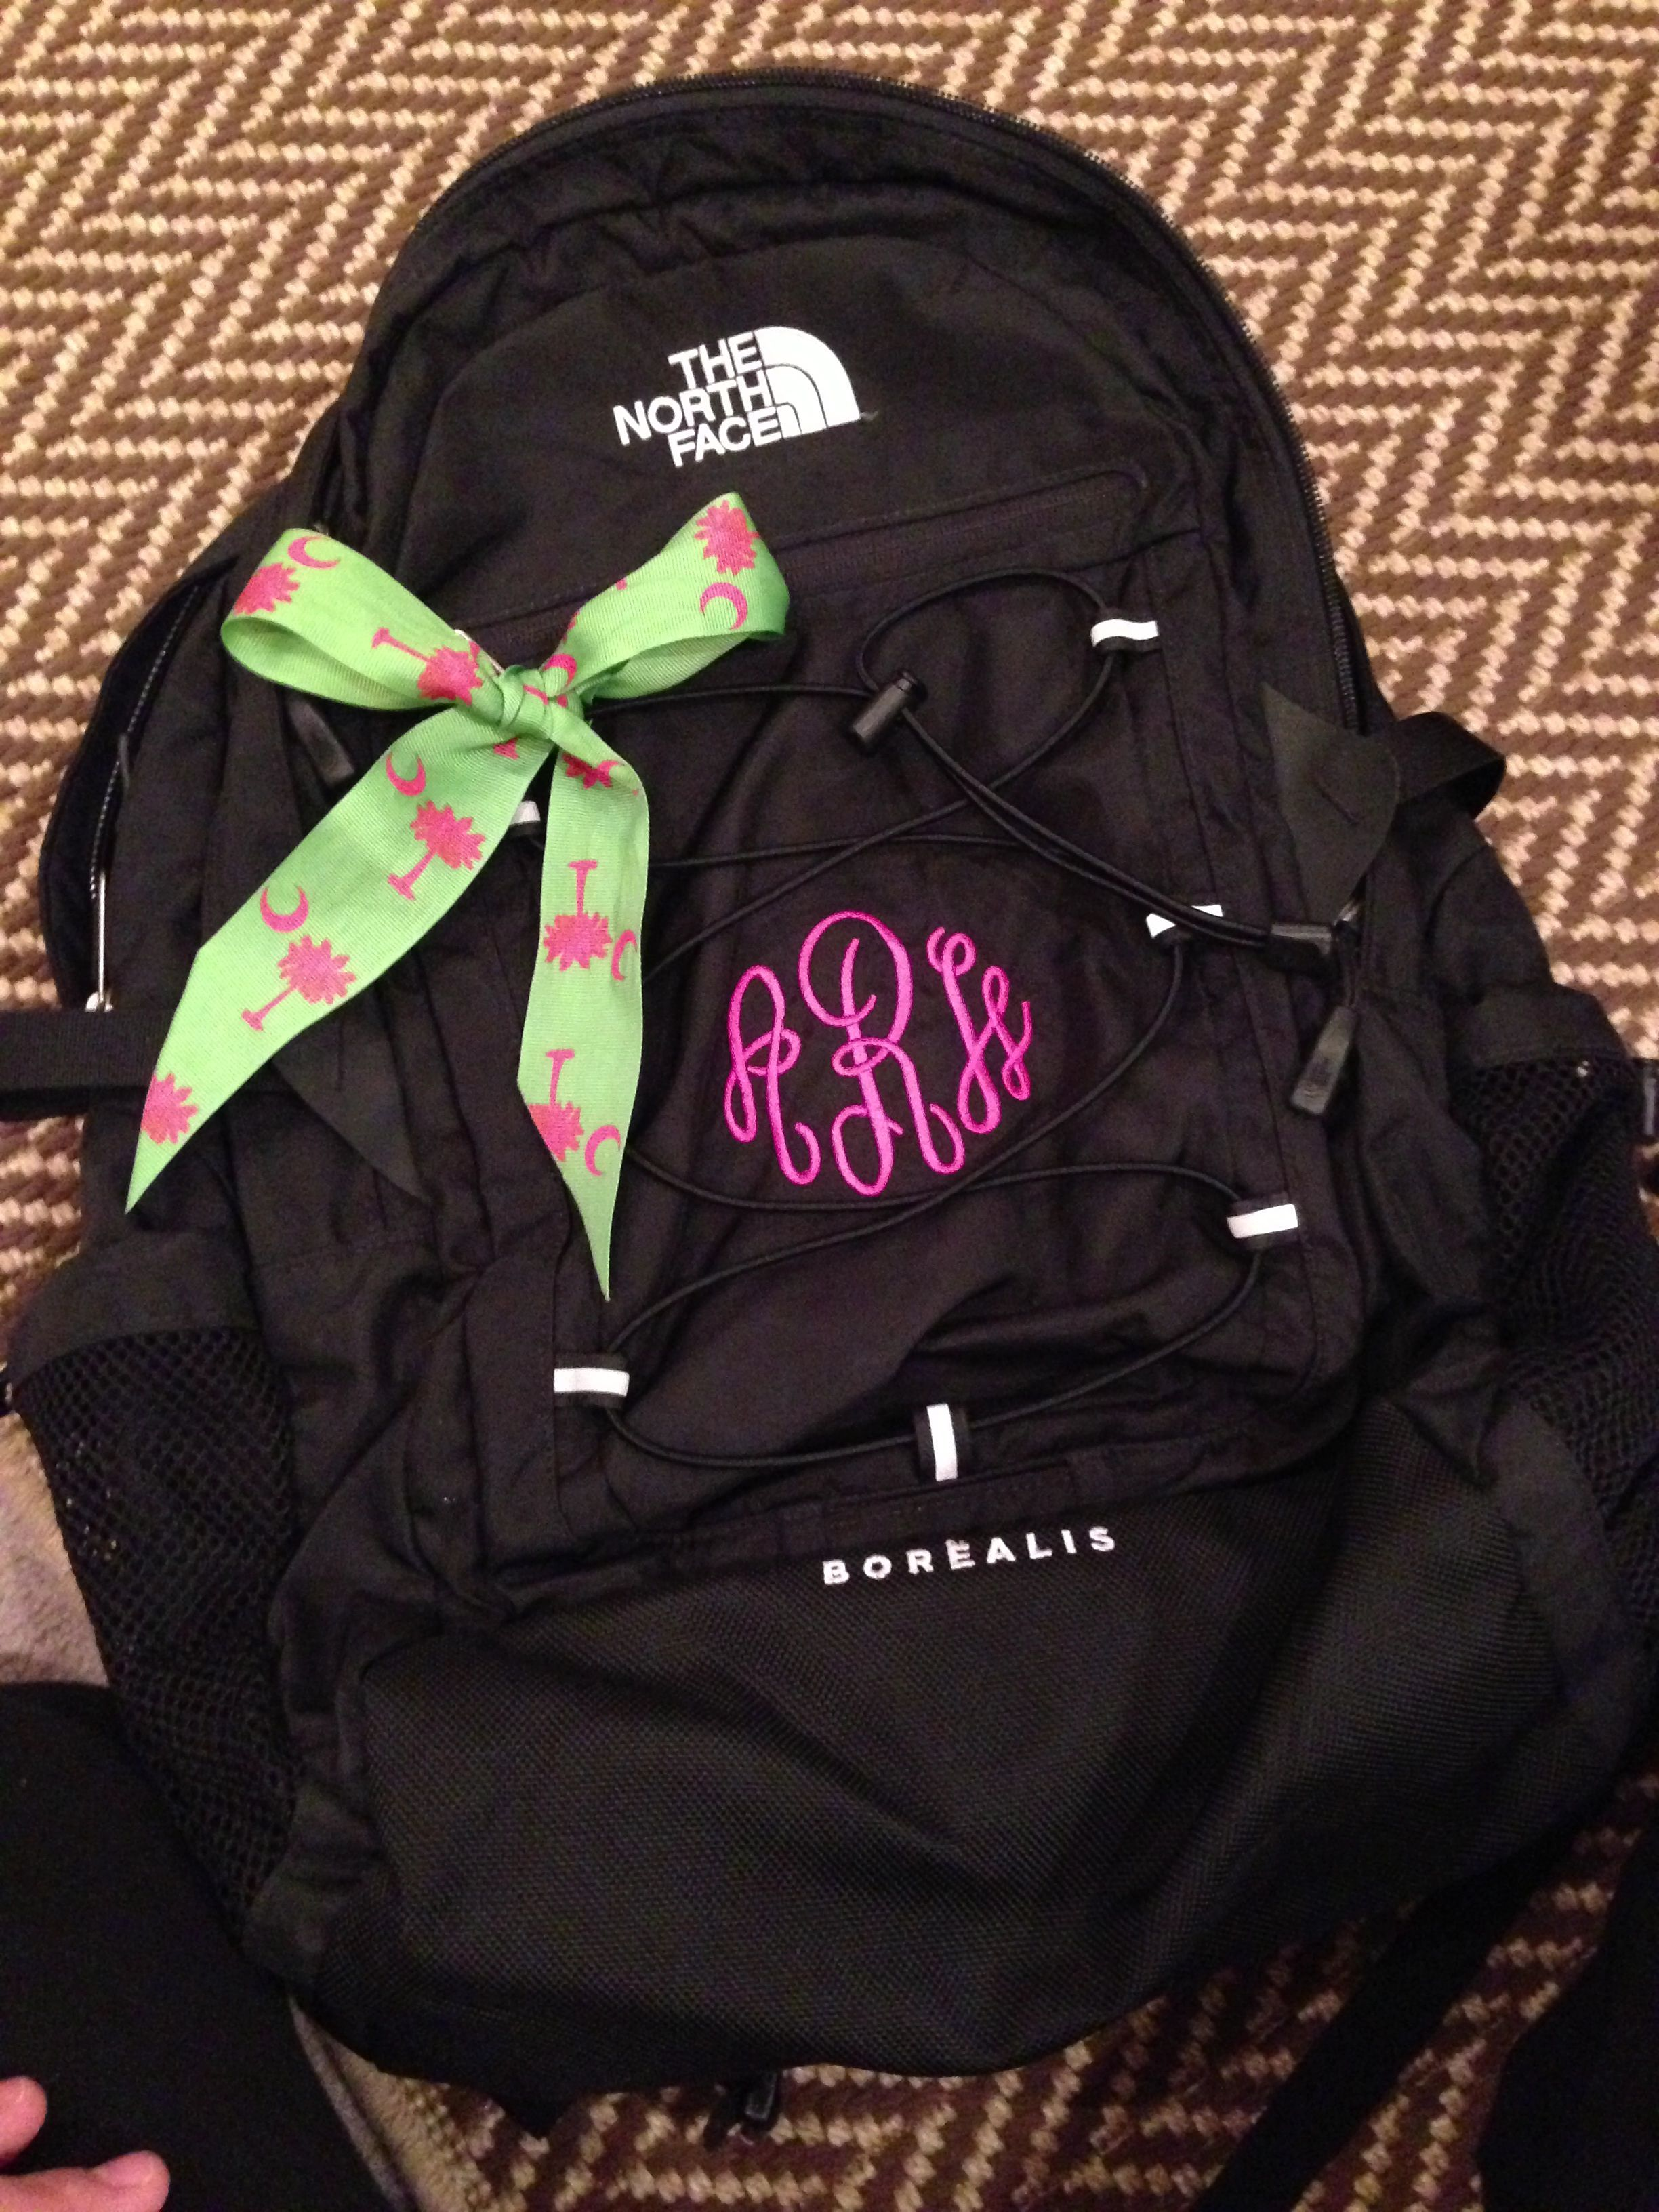 331adb89e12c Monogrammed north face backpack!